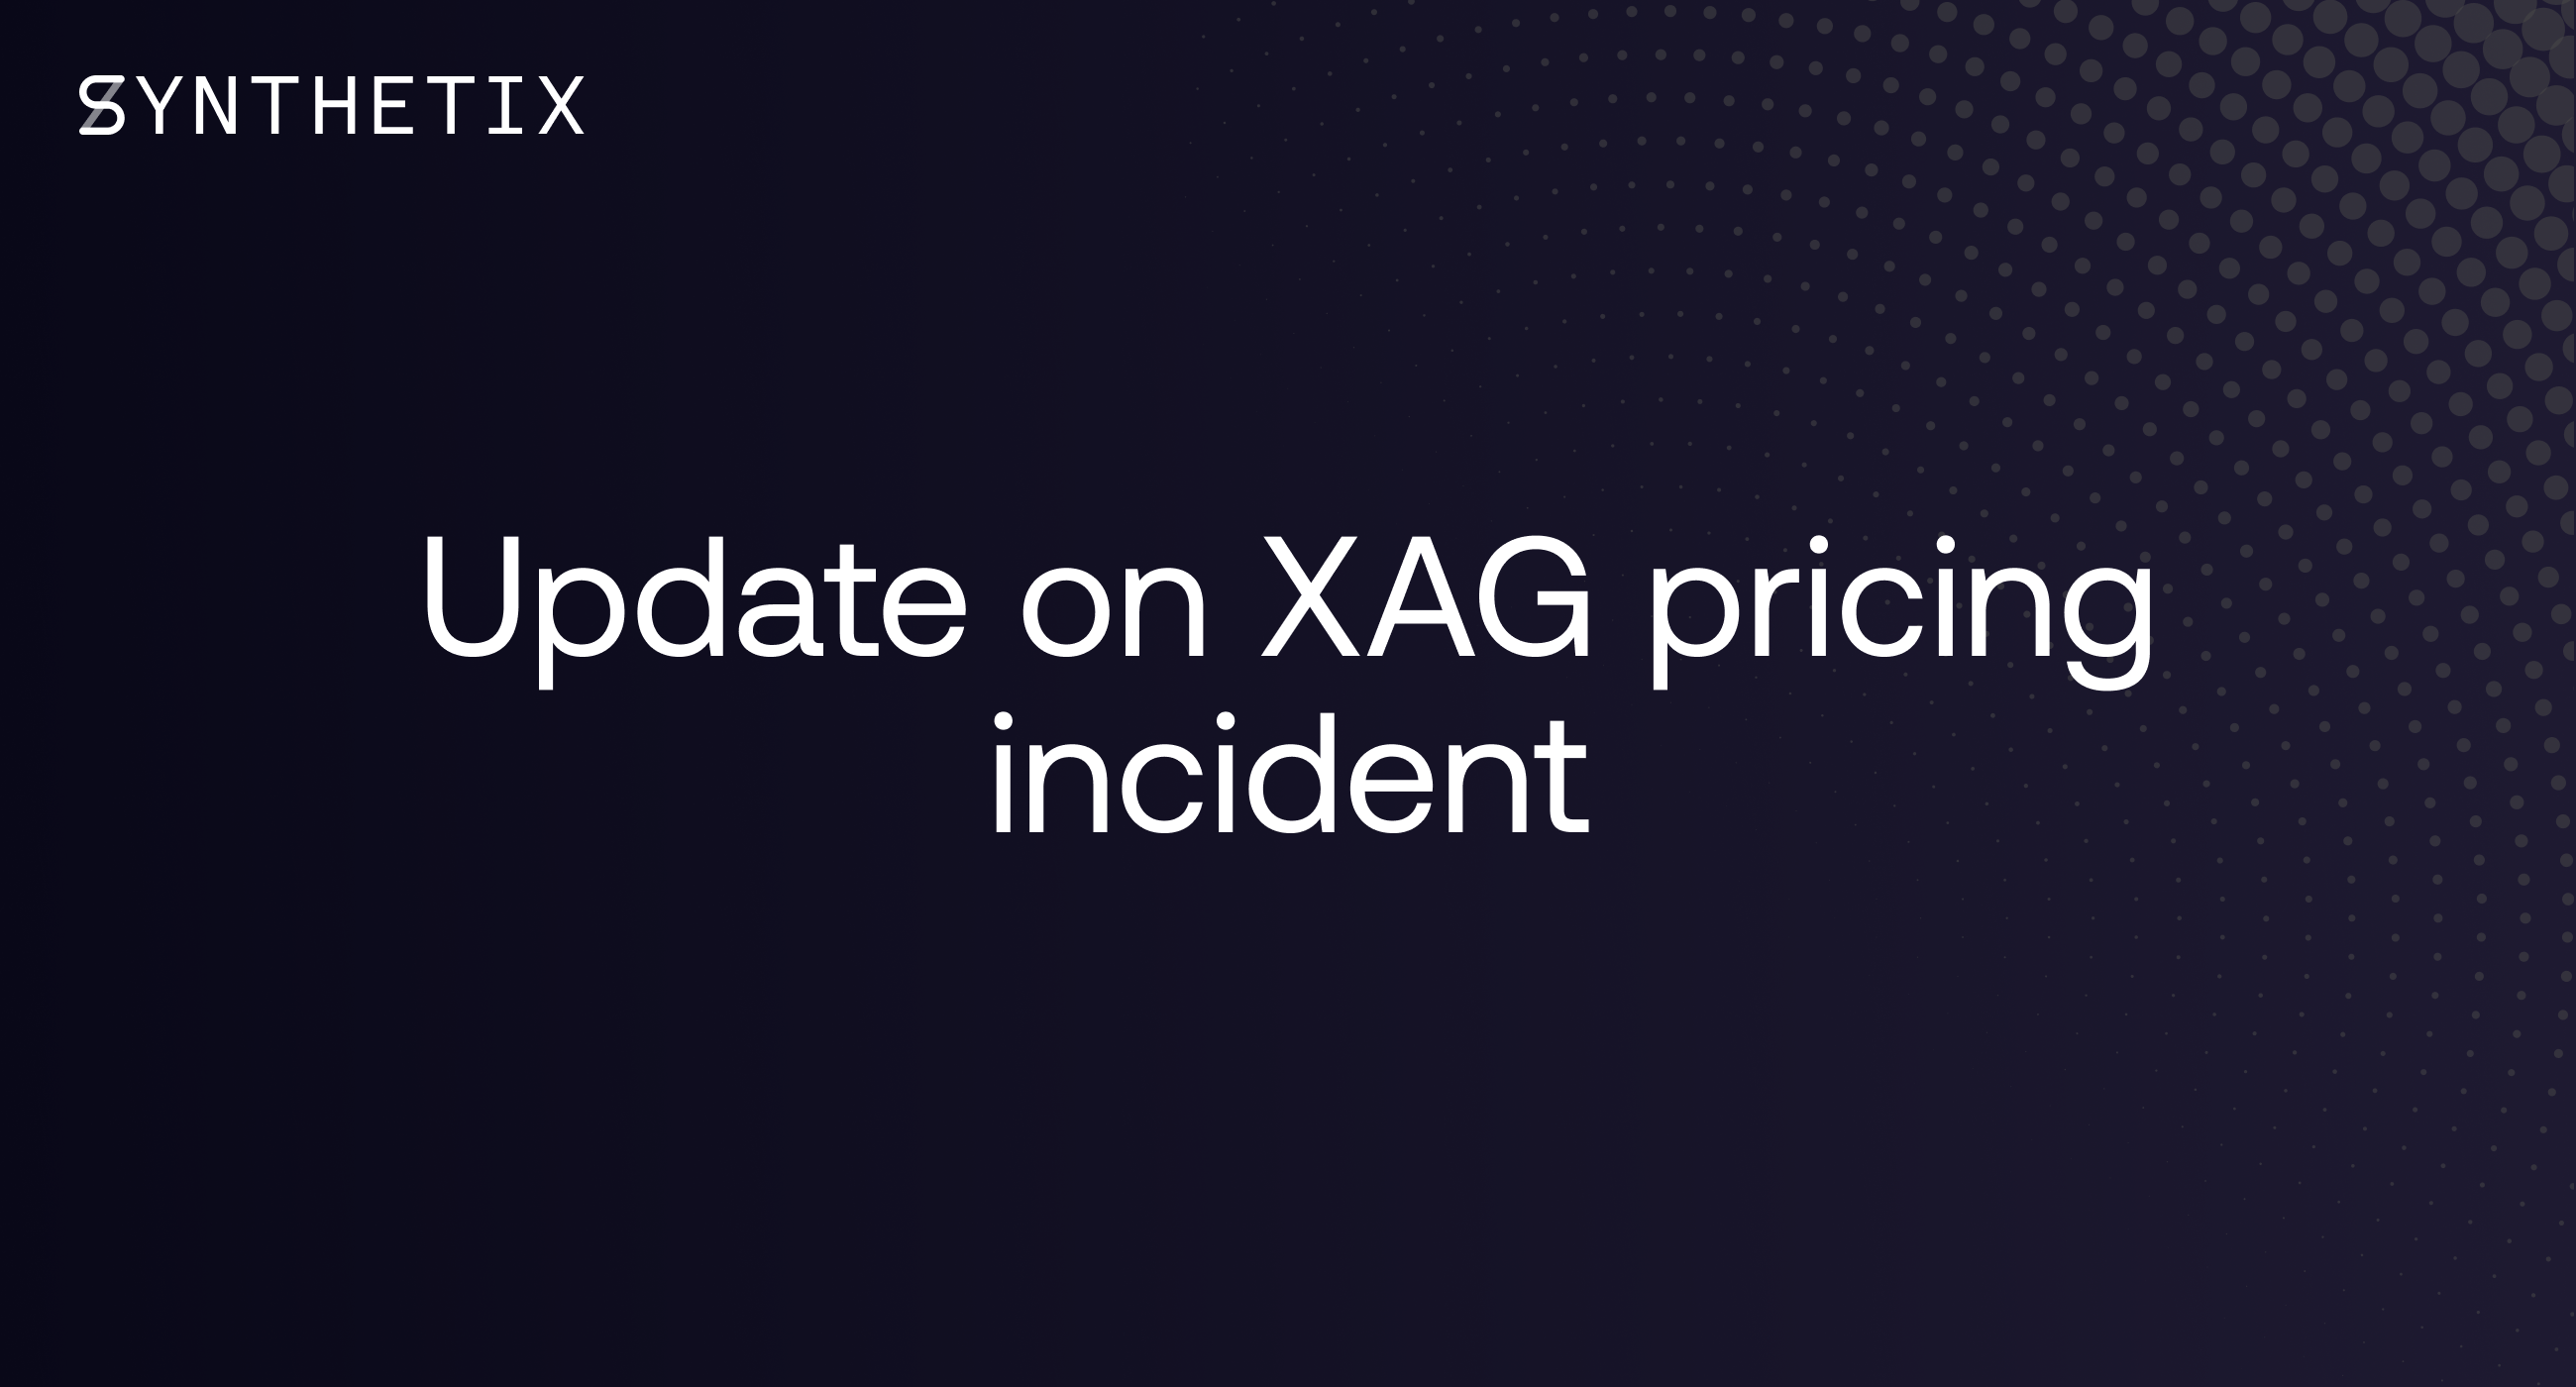 Update on XAG pricing incident